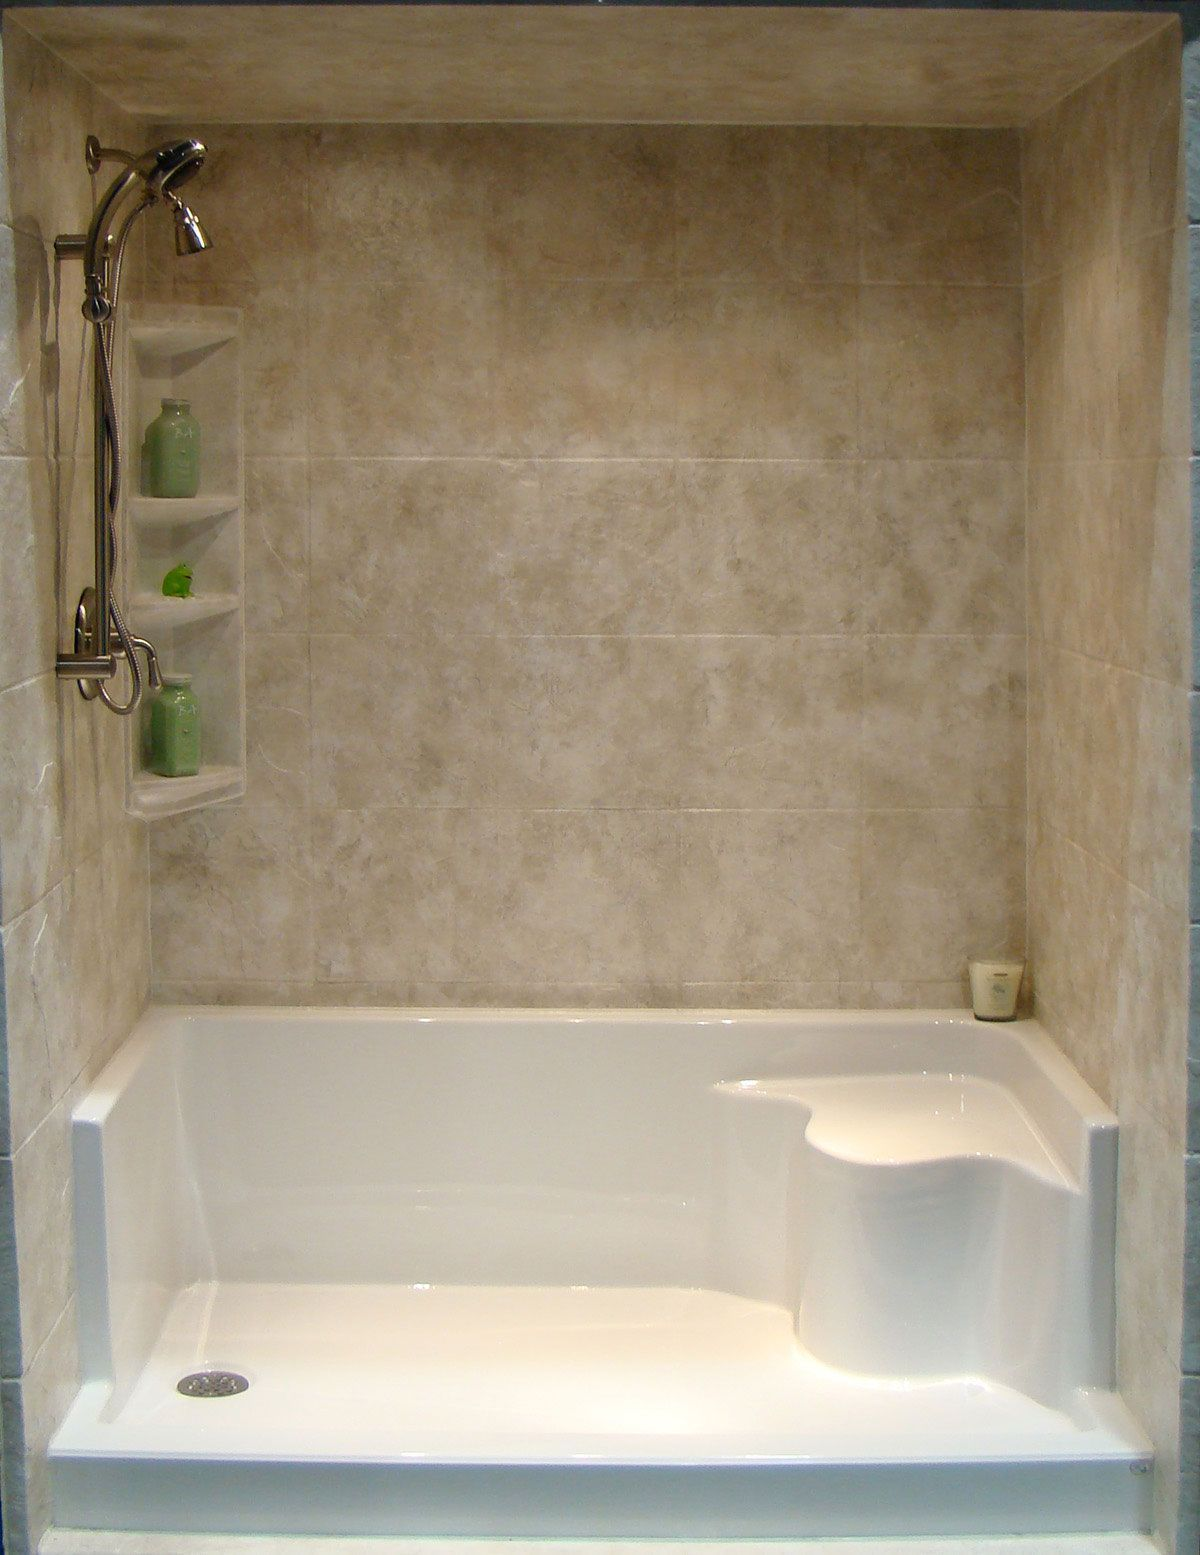 Image Result For Bathroom Shower Insert Tub To Shower Conversion